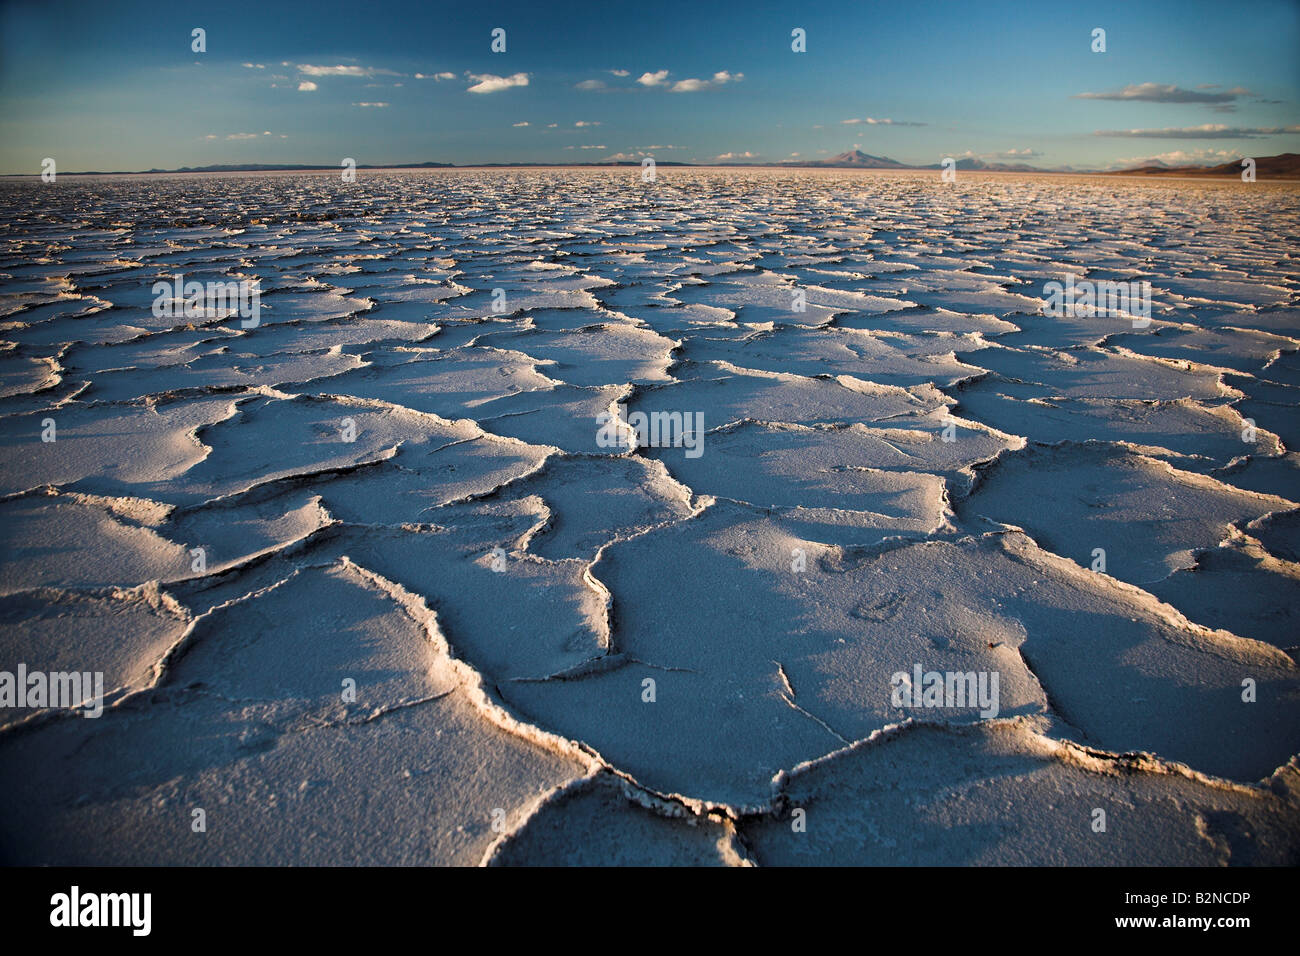 Cracked earth surface at sunrise in the Salar de Uyuni salt flats in Bolivia. - Stock Image